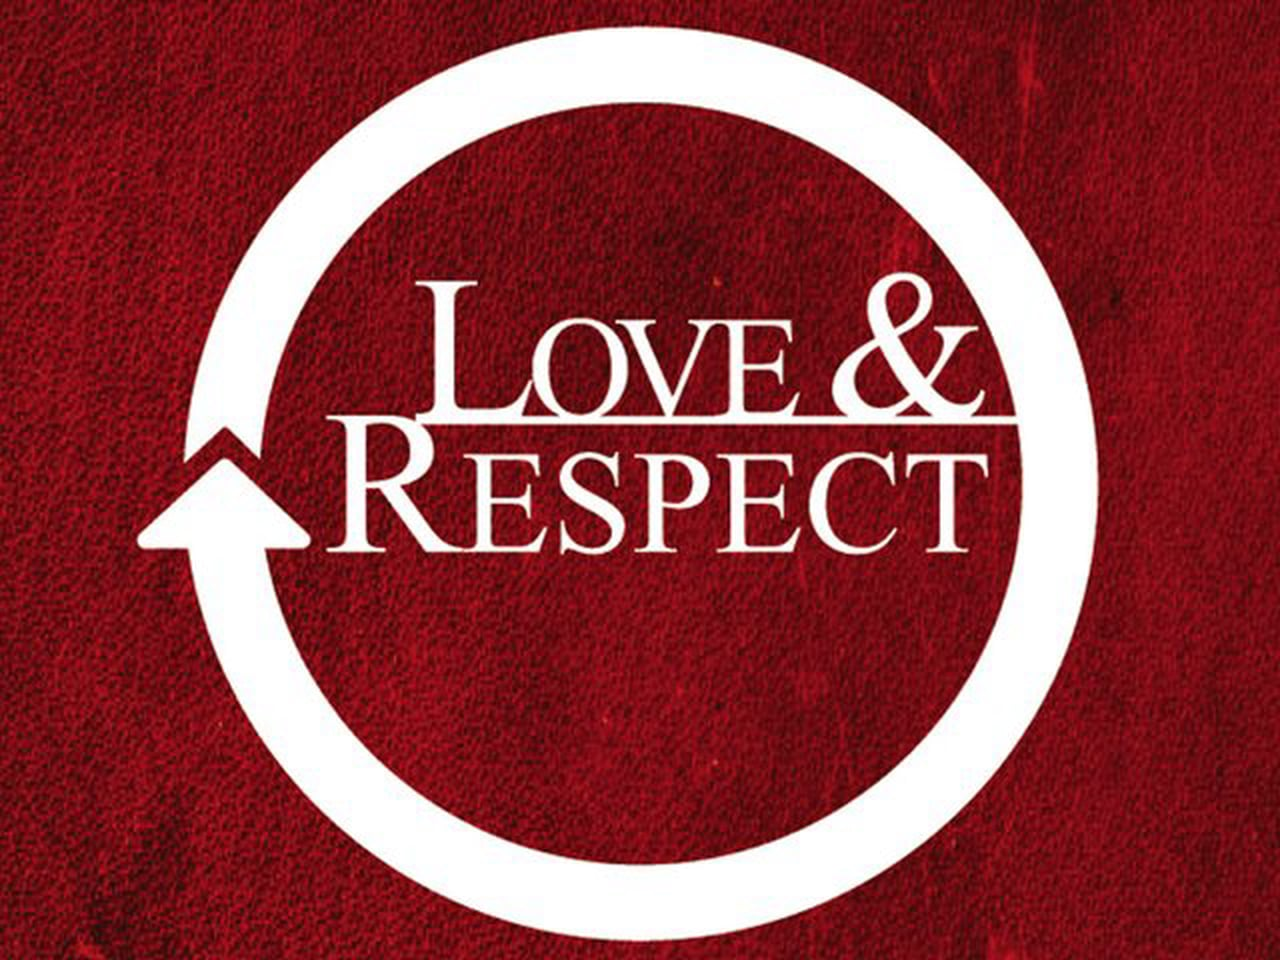 Love And Respect: What Do Adventure, Respect And A Successful Marriage Have